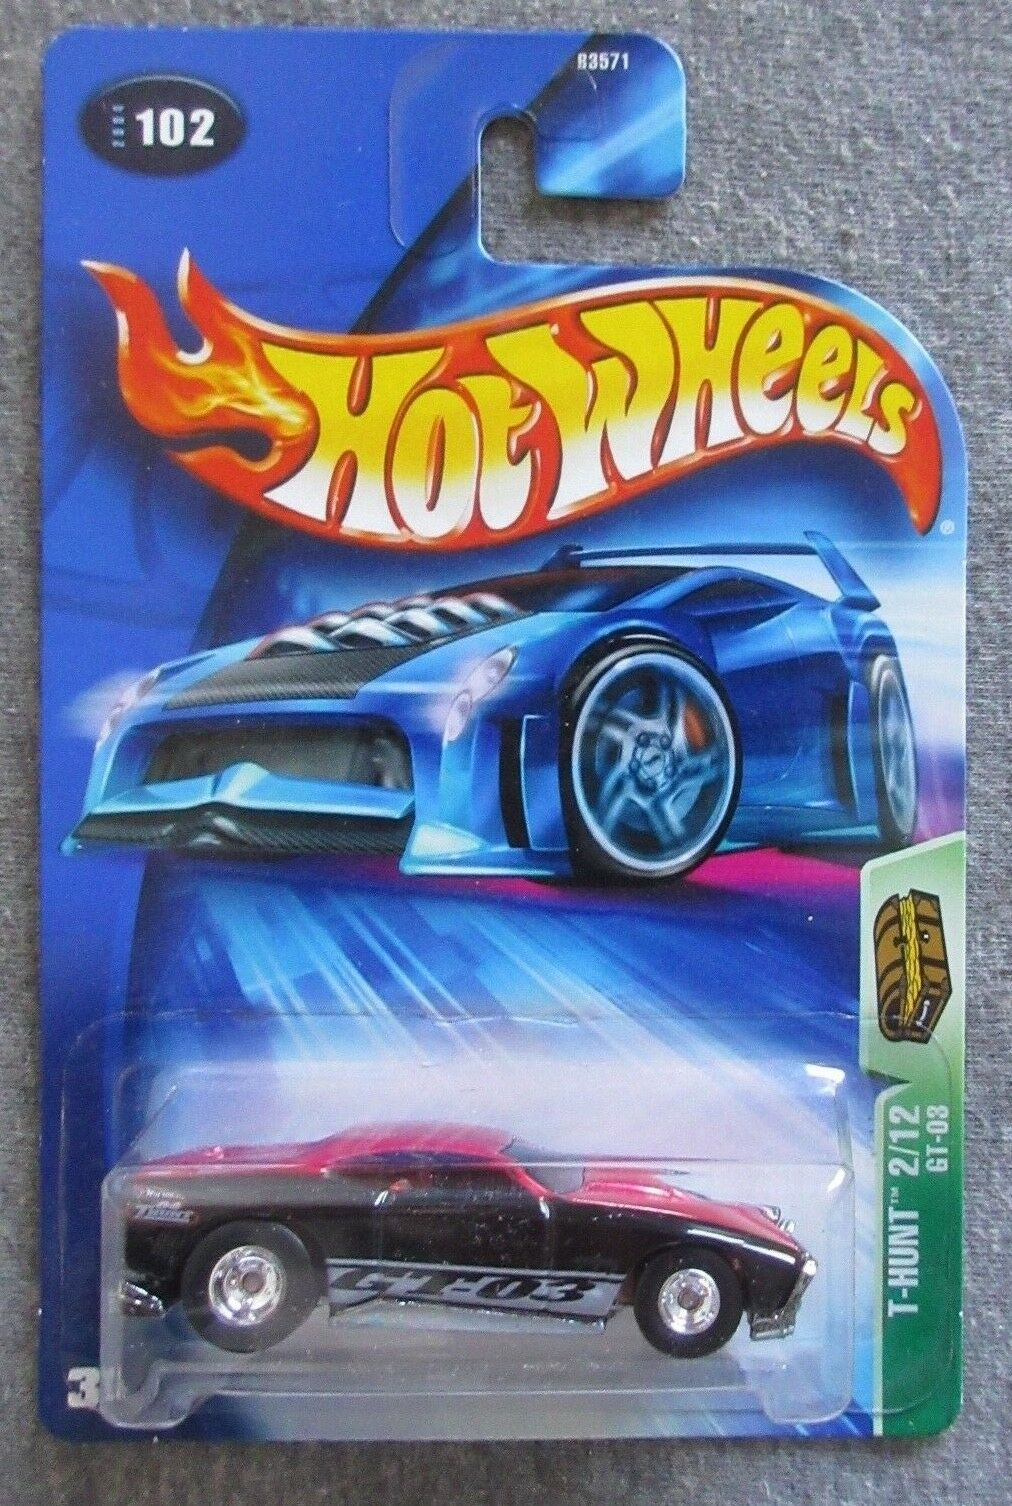 NIP HOT WHEELS DIECAST 1/64 B3571 69 69 69 CAMARO SUPER TREASURE HUNT REAL RIDERS RARE cdd871